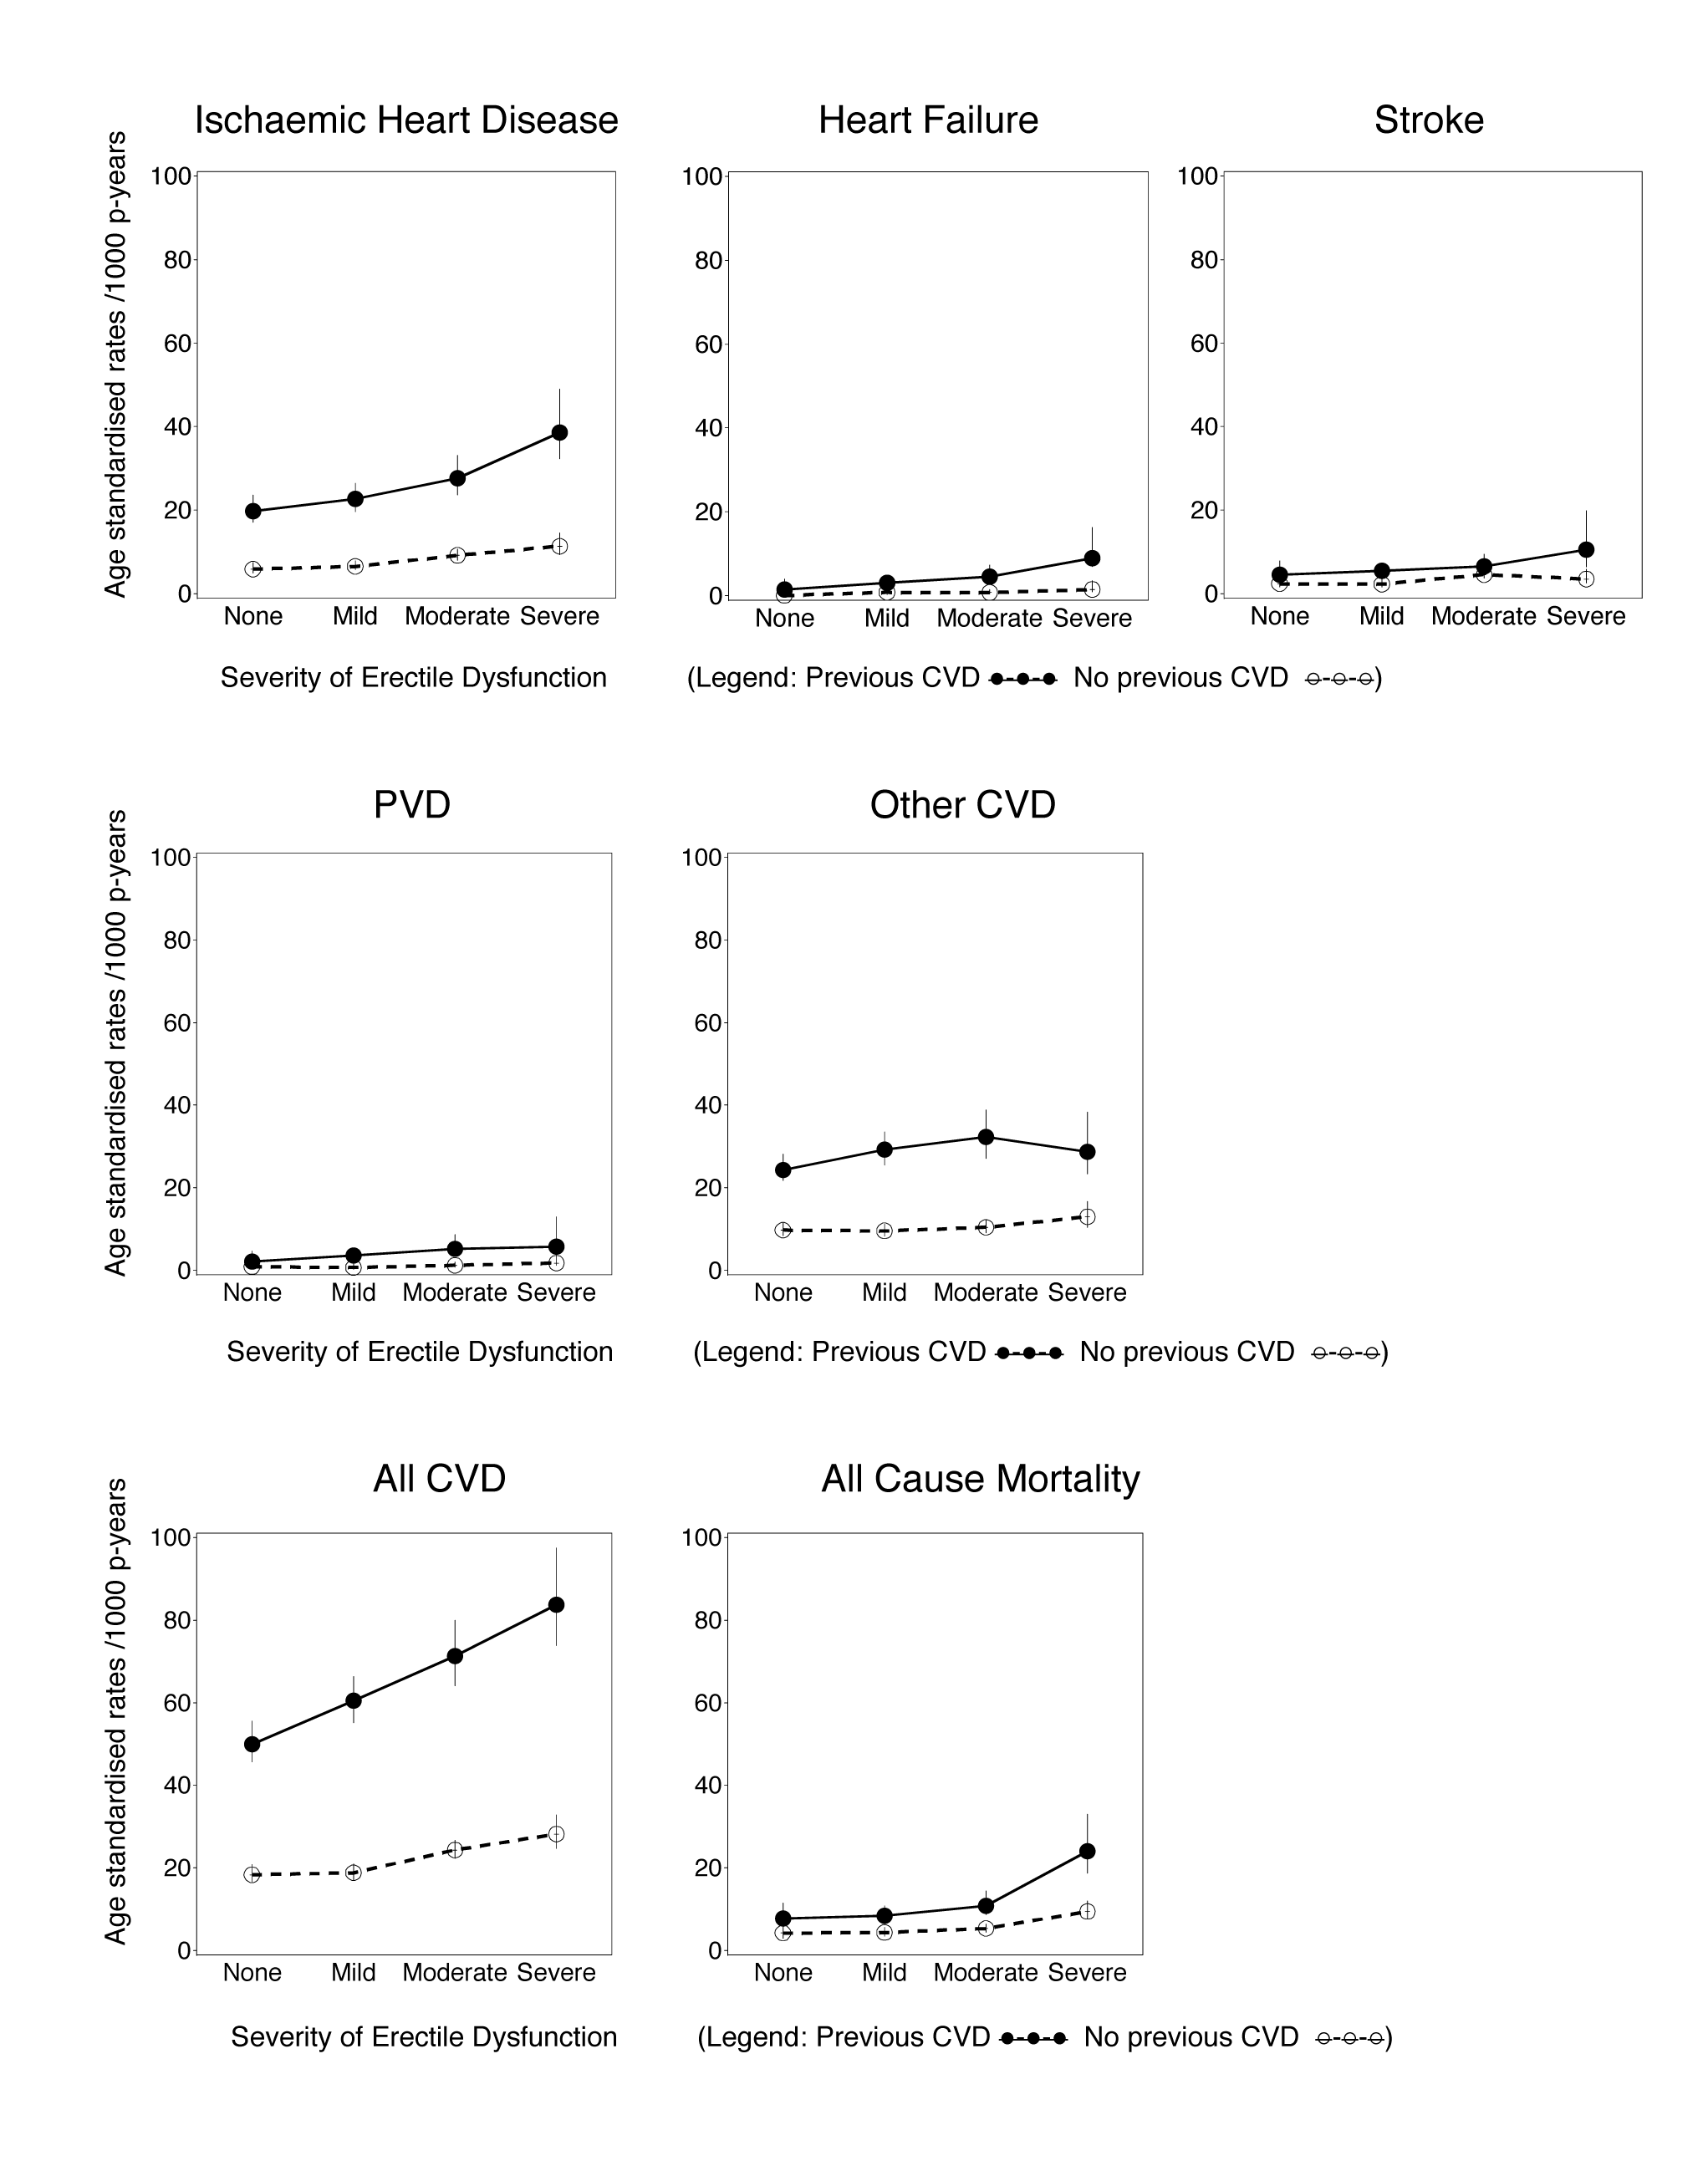 Age-standardised rates (per 1,000 person-years) of grouped CVD hospitalisations since baseline and all-cause mortality by degree of erectile dysfunction and previous CVD history, directly age-standardised to the 2006 New South Wales population.